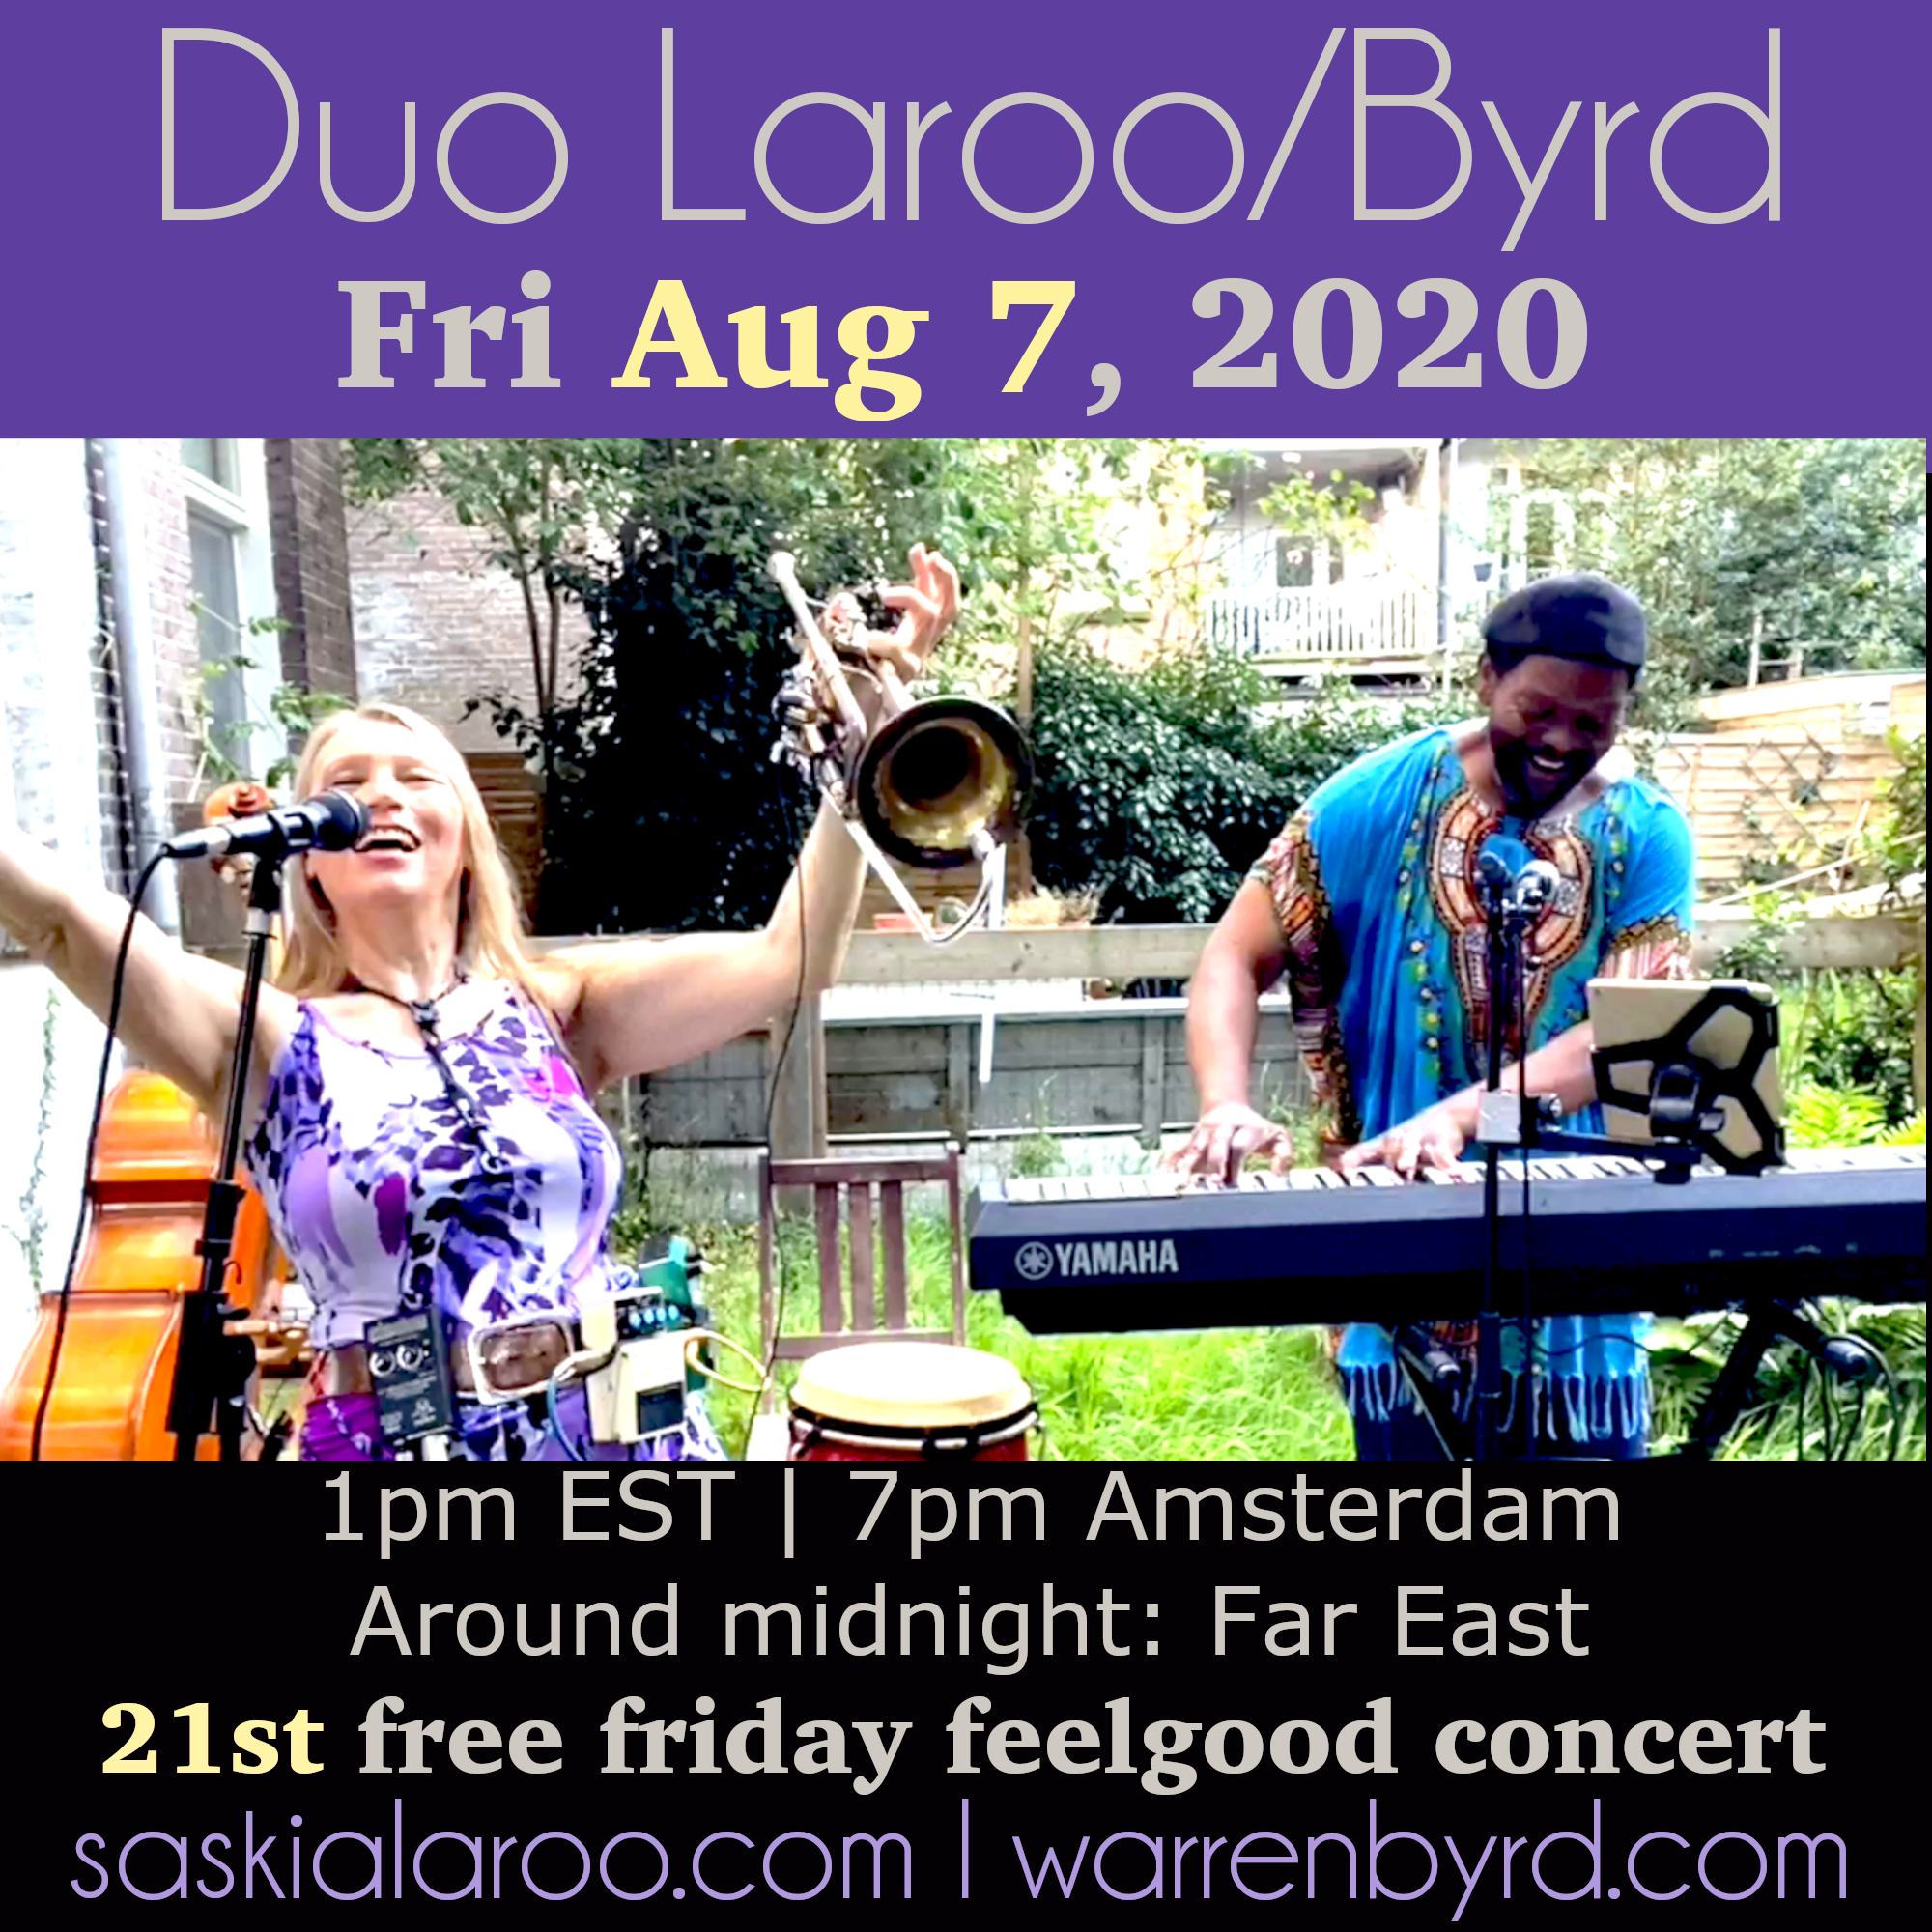 Free 21st Duo Laroo/byrd Live & Streamed Friday Feelgood Concert